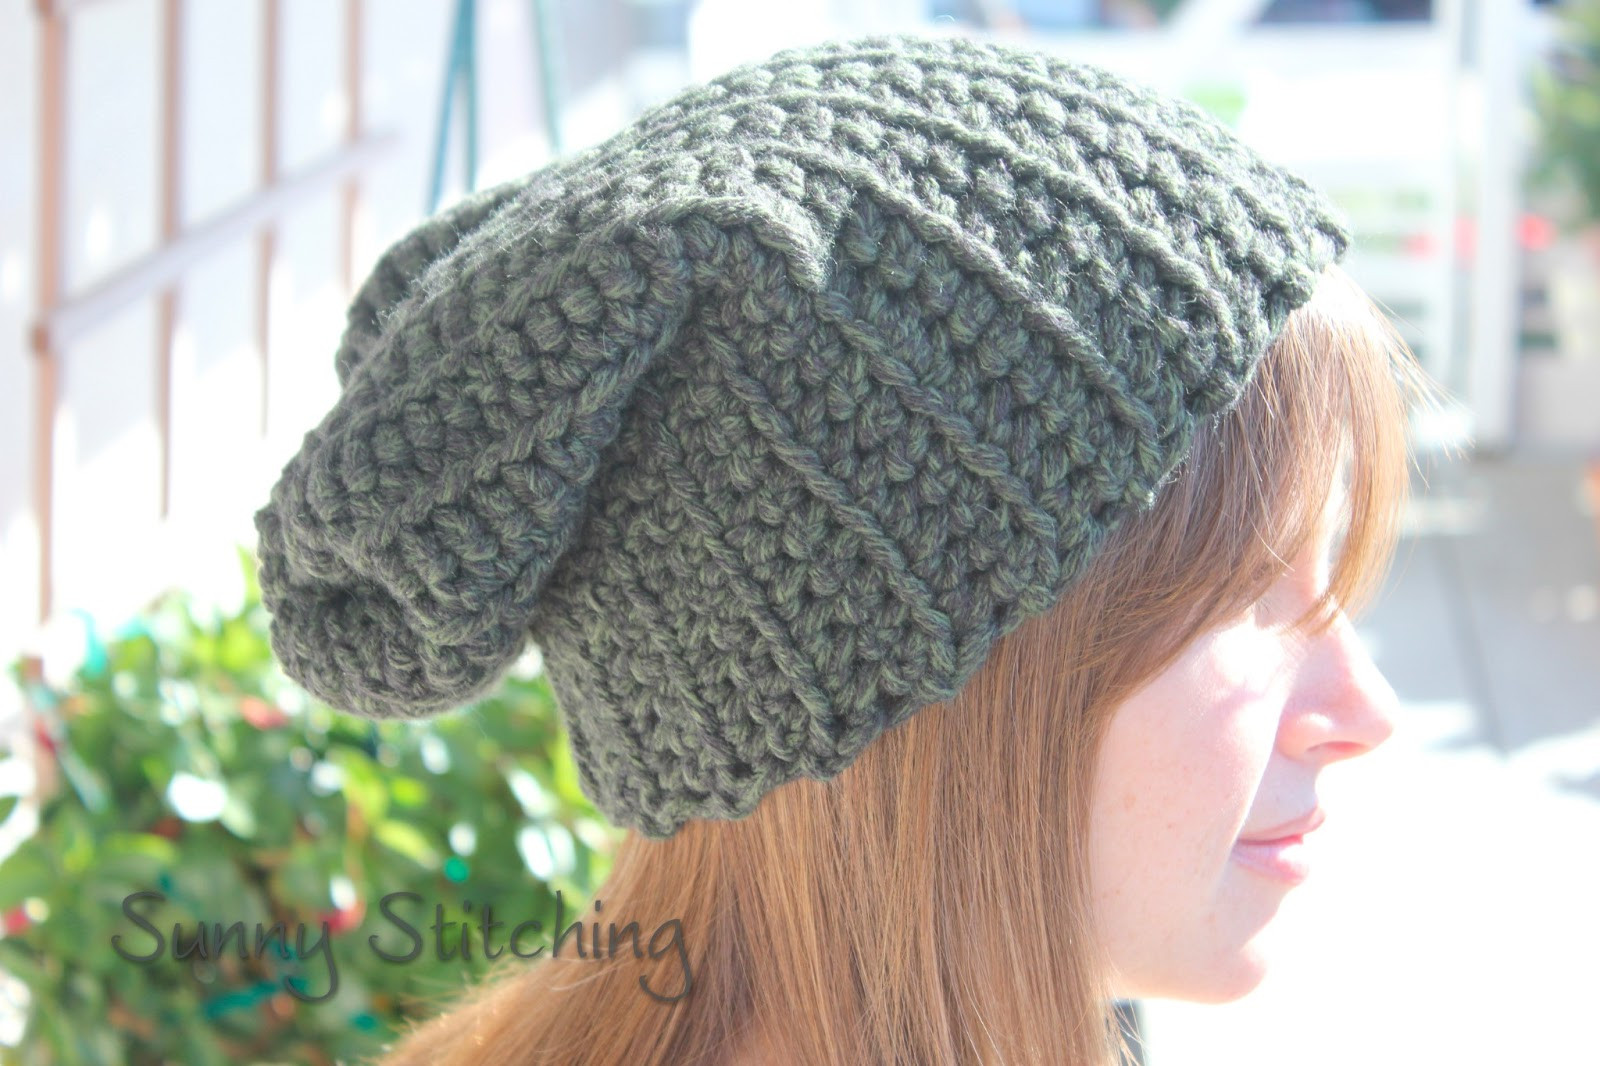 Hat Patterns Beautiful Sunny Stitching Slouchy Hat Crochet Pattern Of Luxury 49 Pictures Hat Patterns